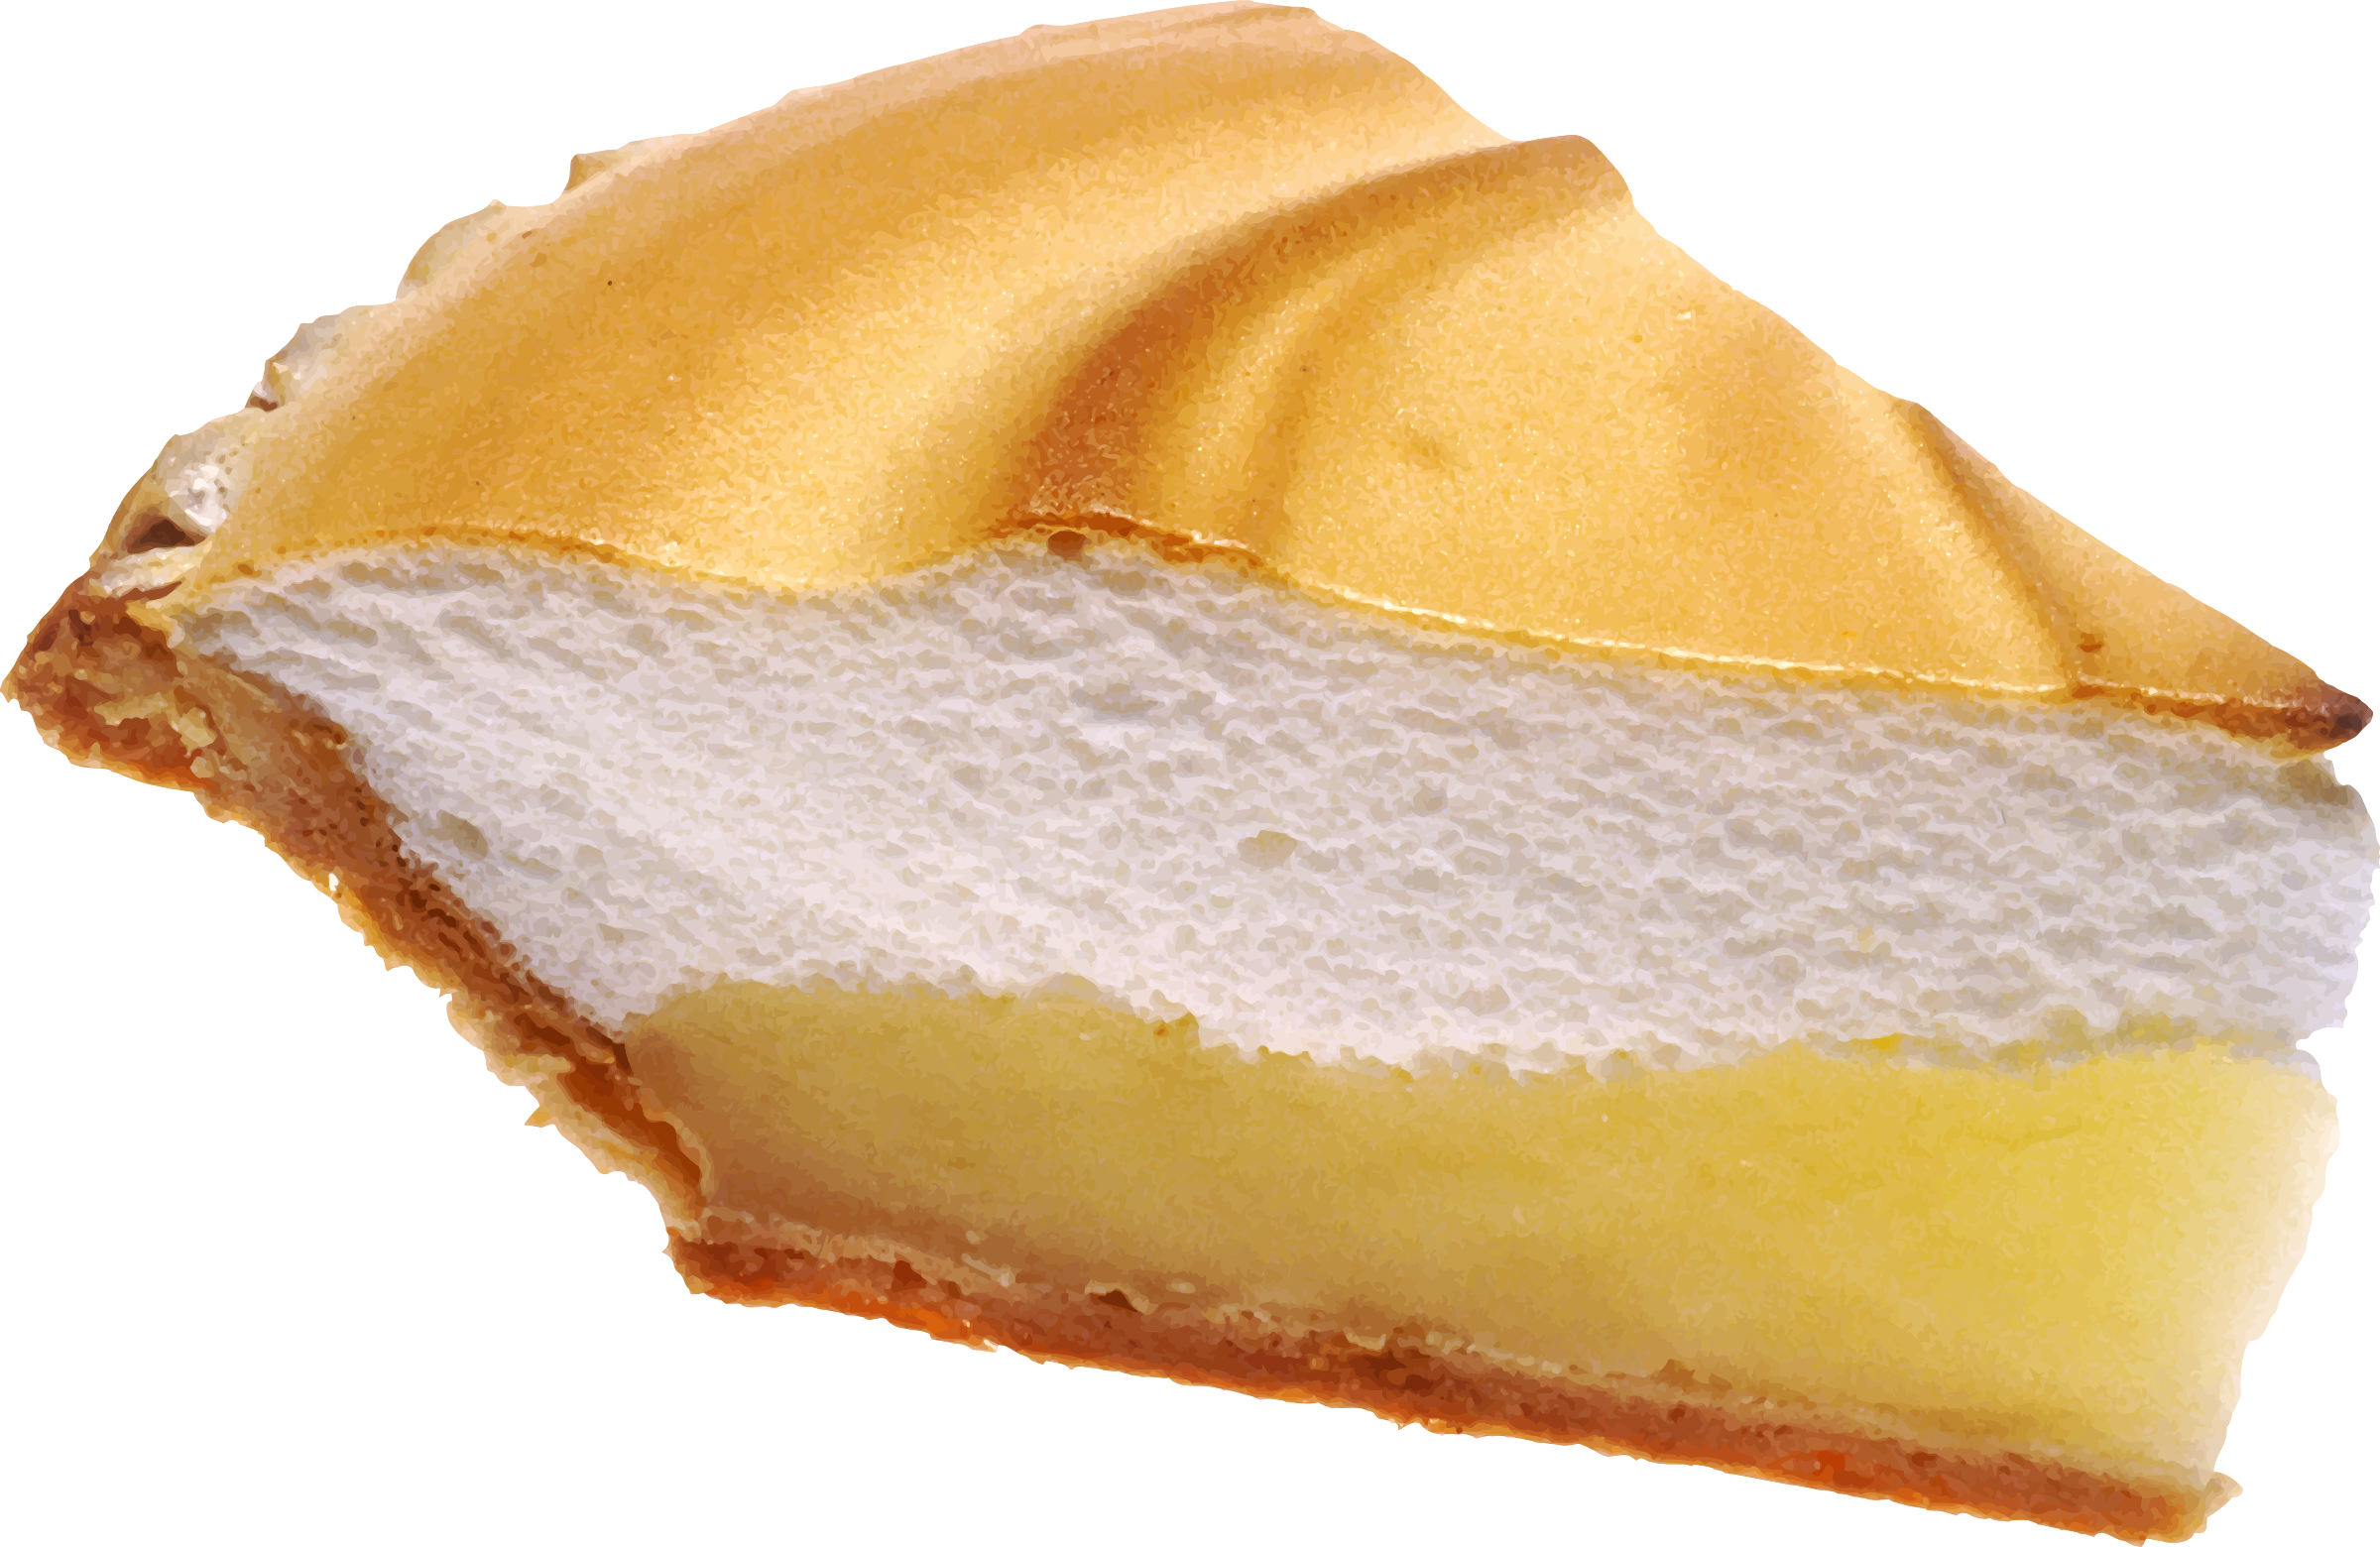 Lemon meringue pie by Firkin